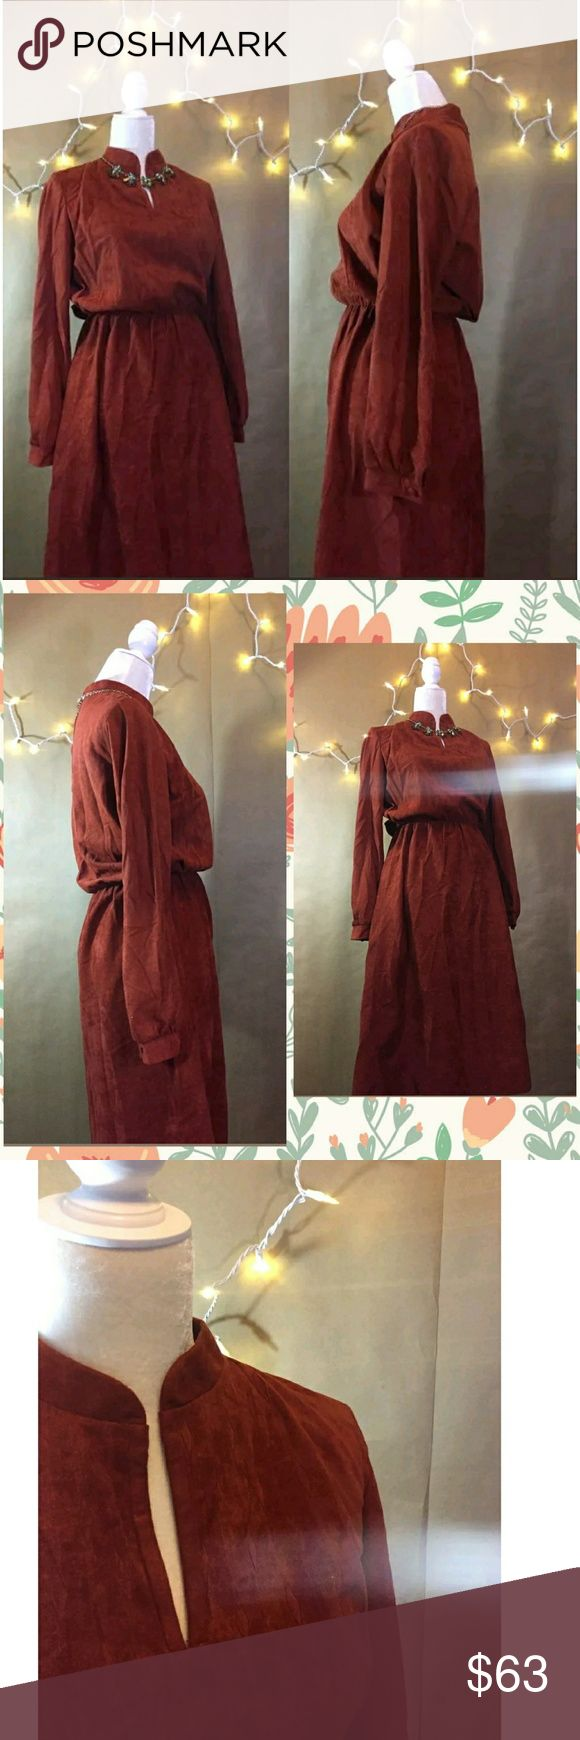 🎀Vintage Dress Kay Windsor Vintage 1970s.  No Size tag but I'm assuming Size 16 from measurements  Wide 20 length 46.5  Stretch waist  Small unstitched in middle of waist band  Color is a burnt orange red This beautiful Vinatge Kay Windsor Dress has a nice suede feel to it.  💕Reasonable Offers Considered  🚫 Accessories and other items not included for styleing purposes only🚫 Vintage Dresses Midi